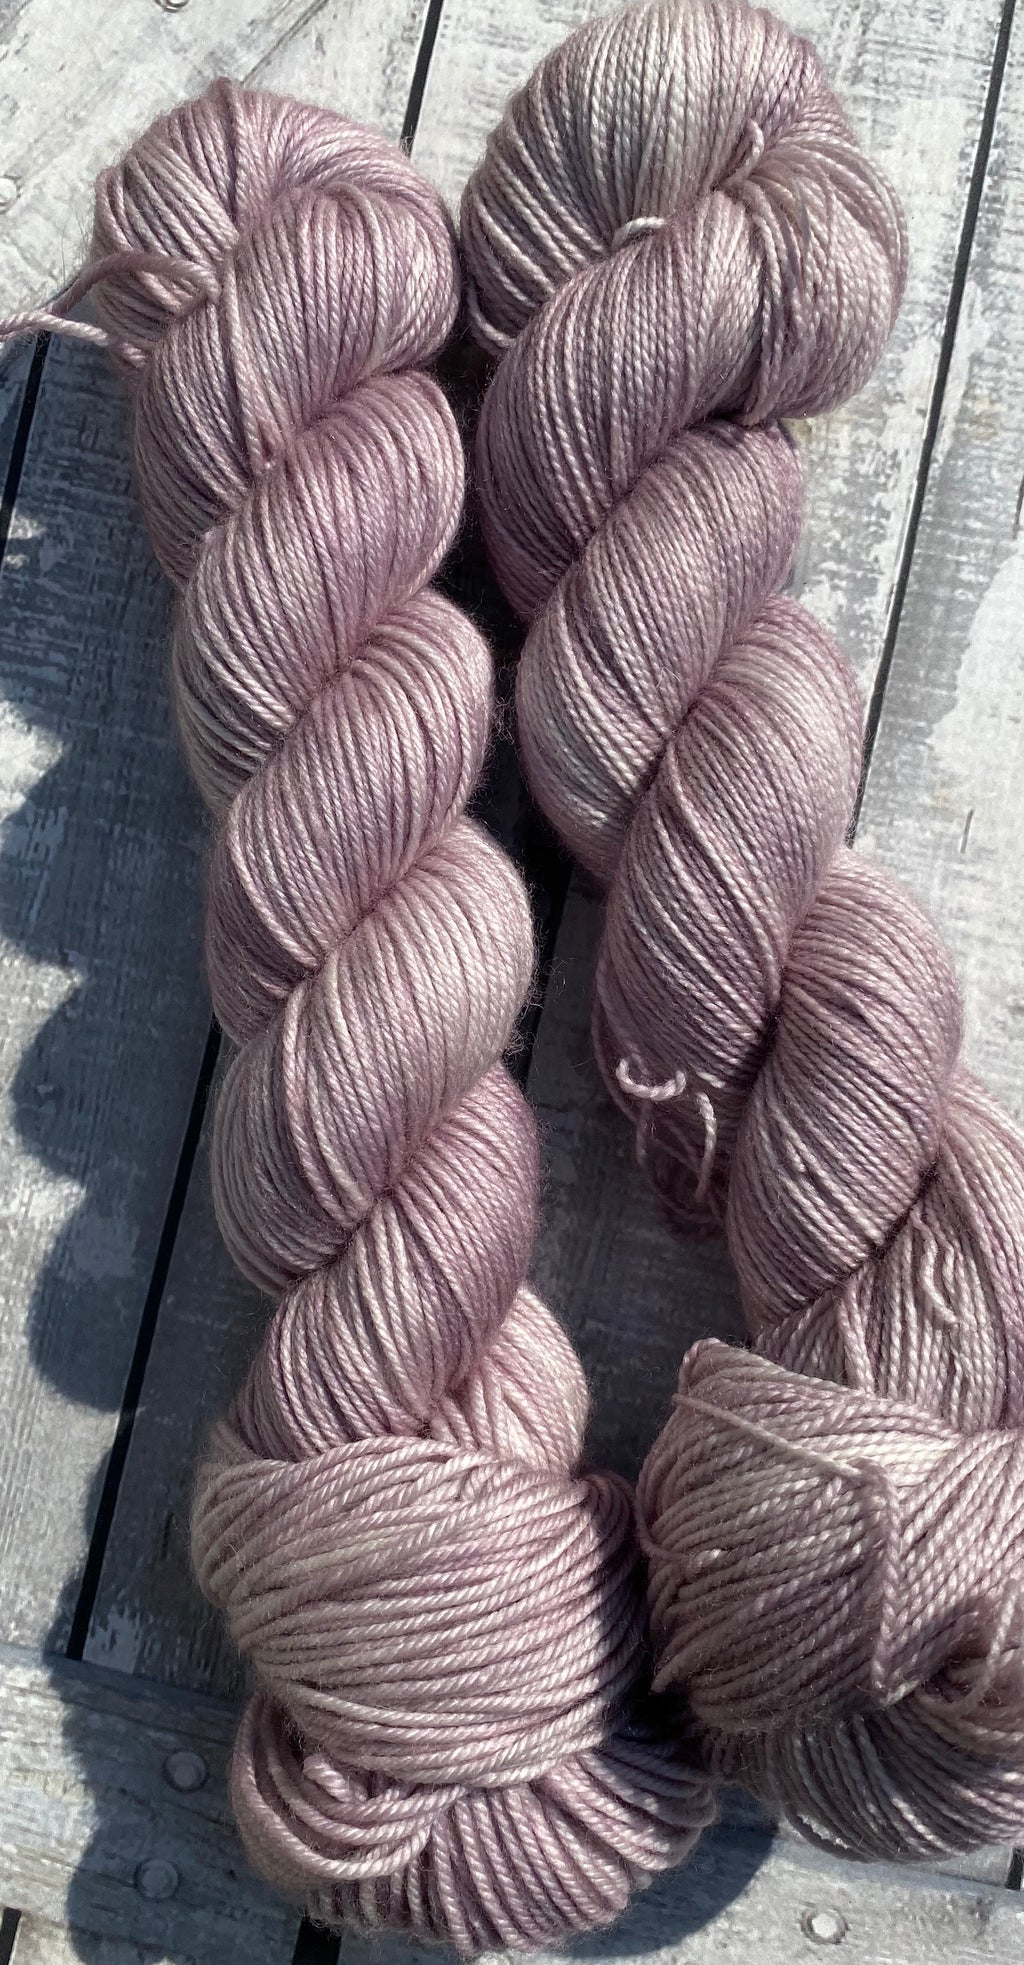 Michelmas Daisy Fairy - FALL 2020 collection, Toad Hollow Yarns